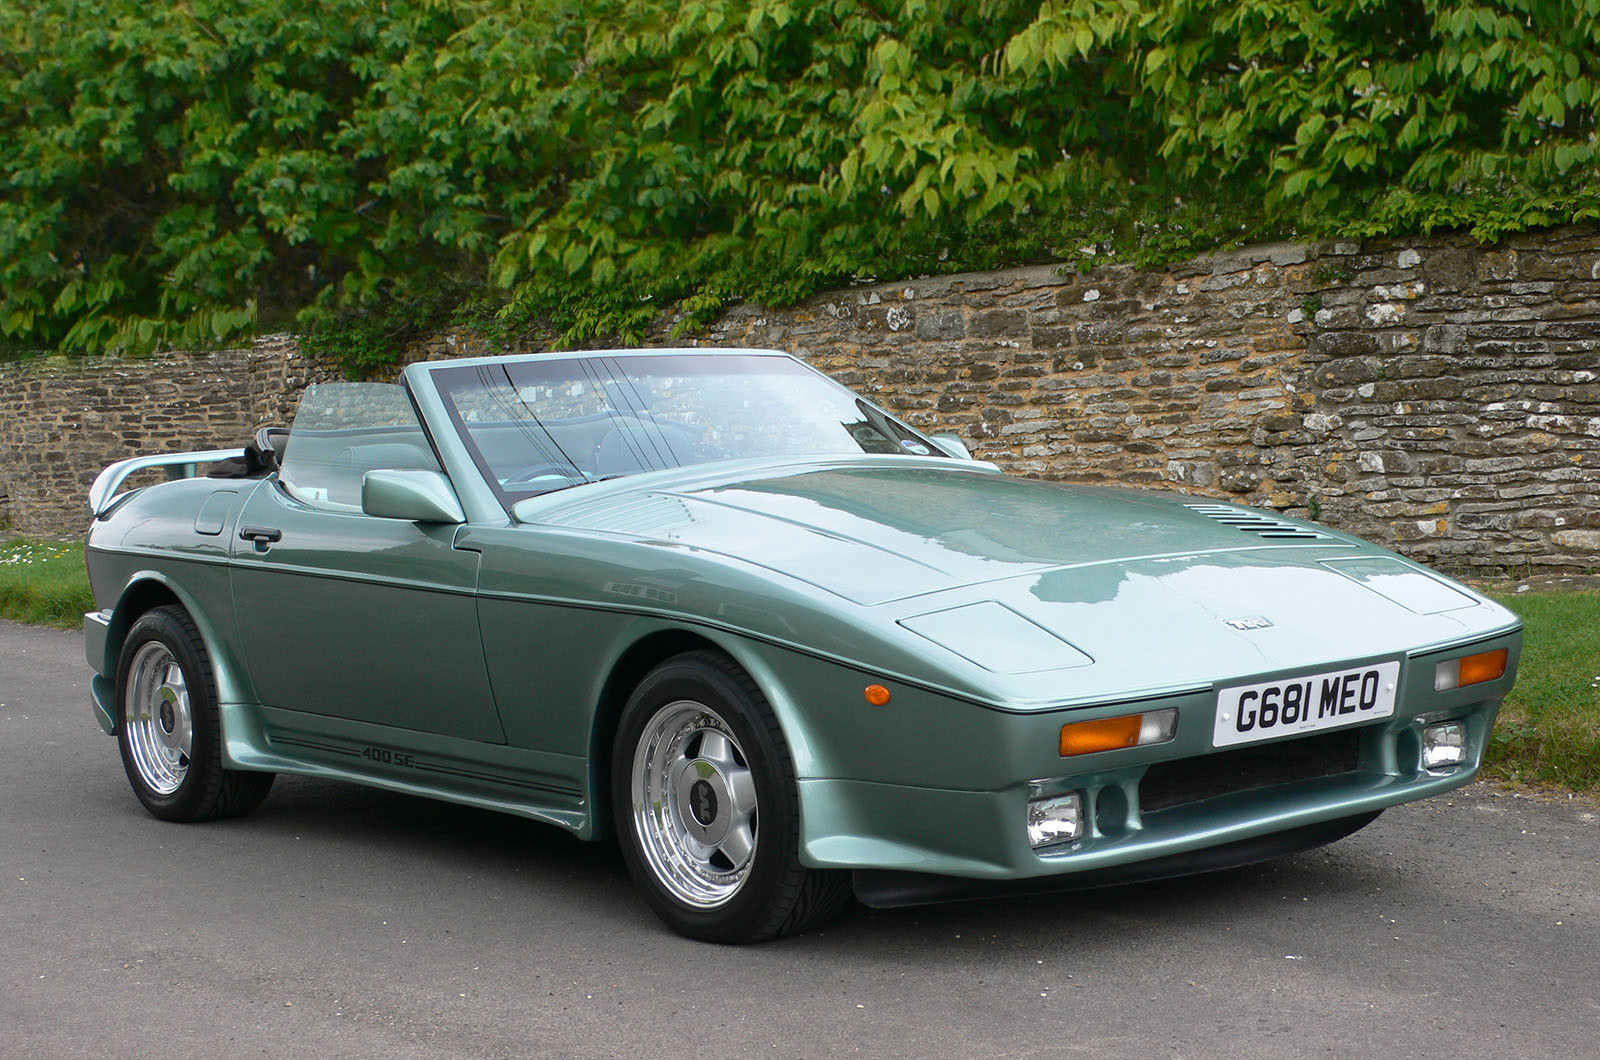 Used Tvr Project Car For Sale